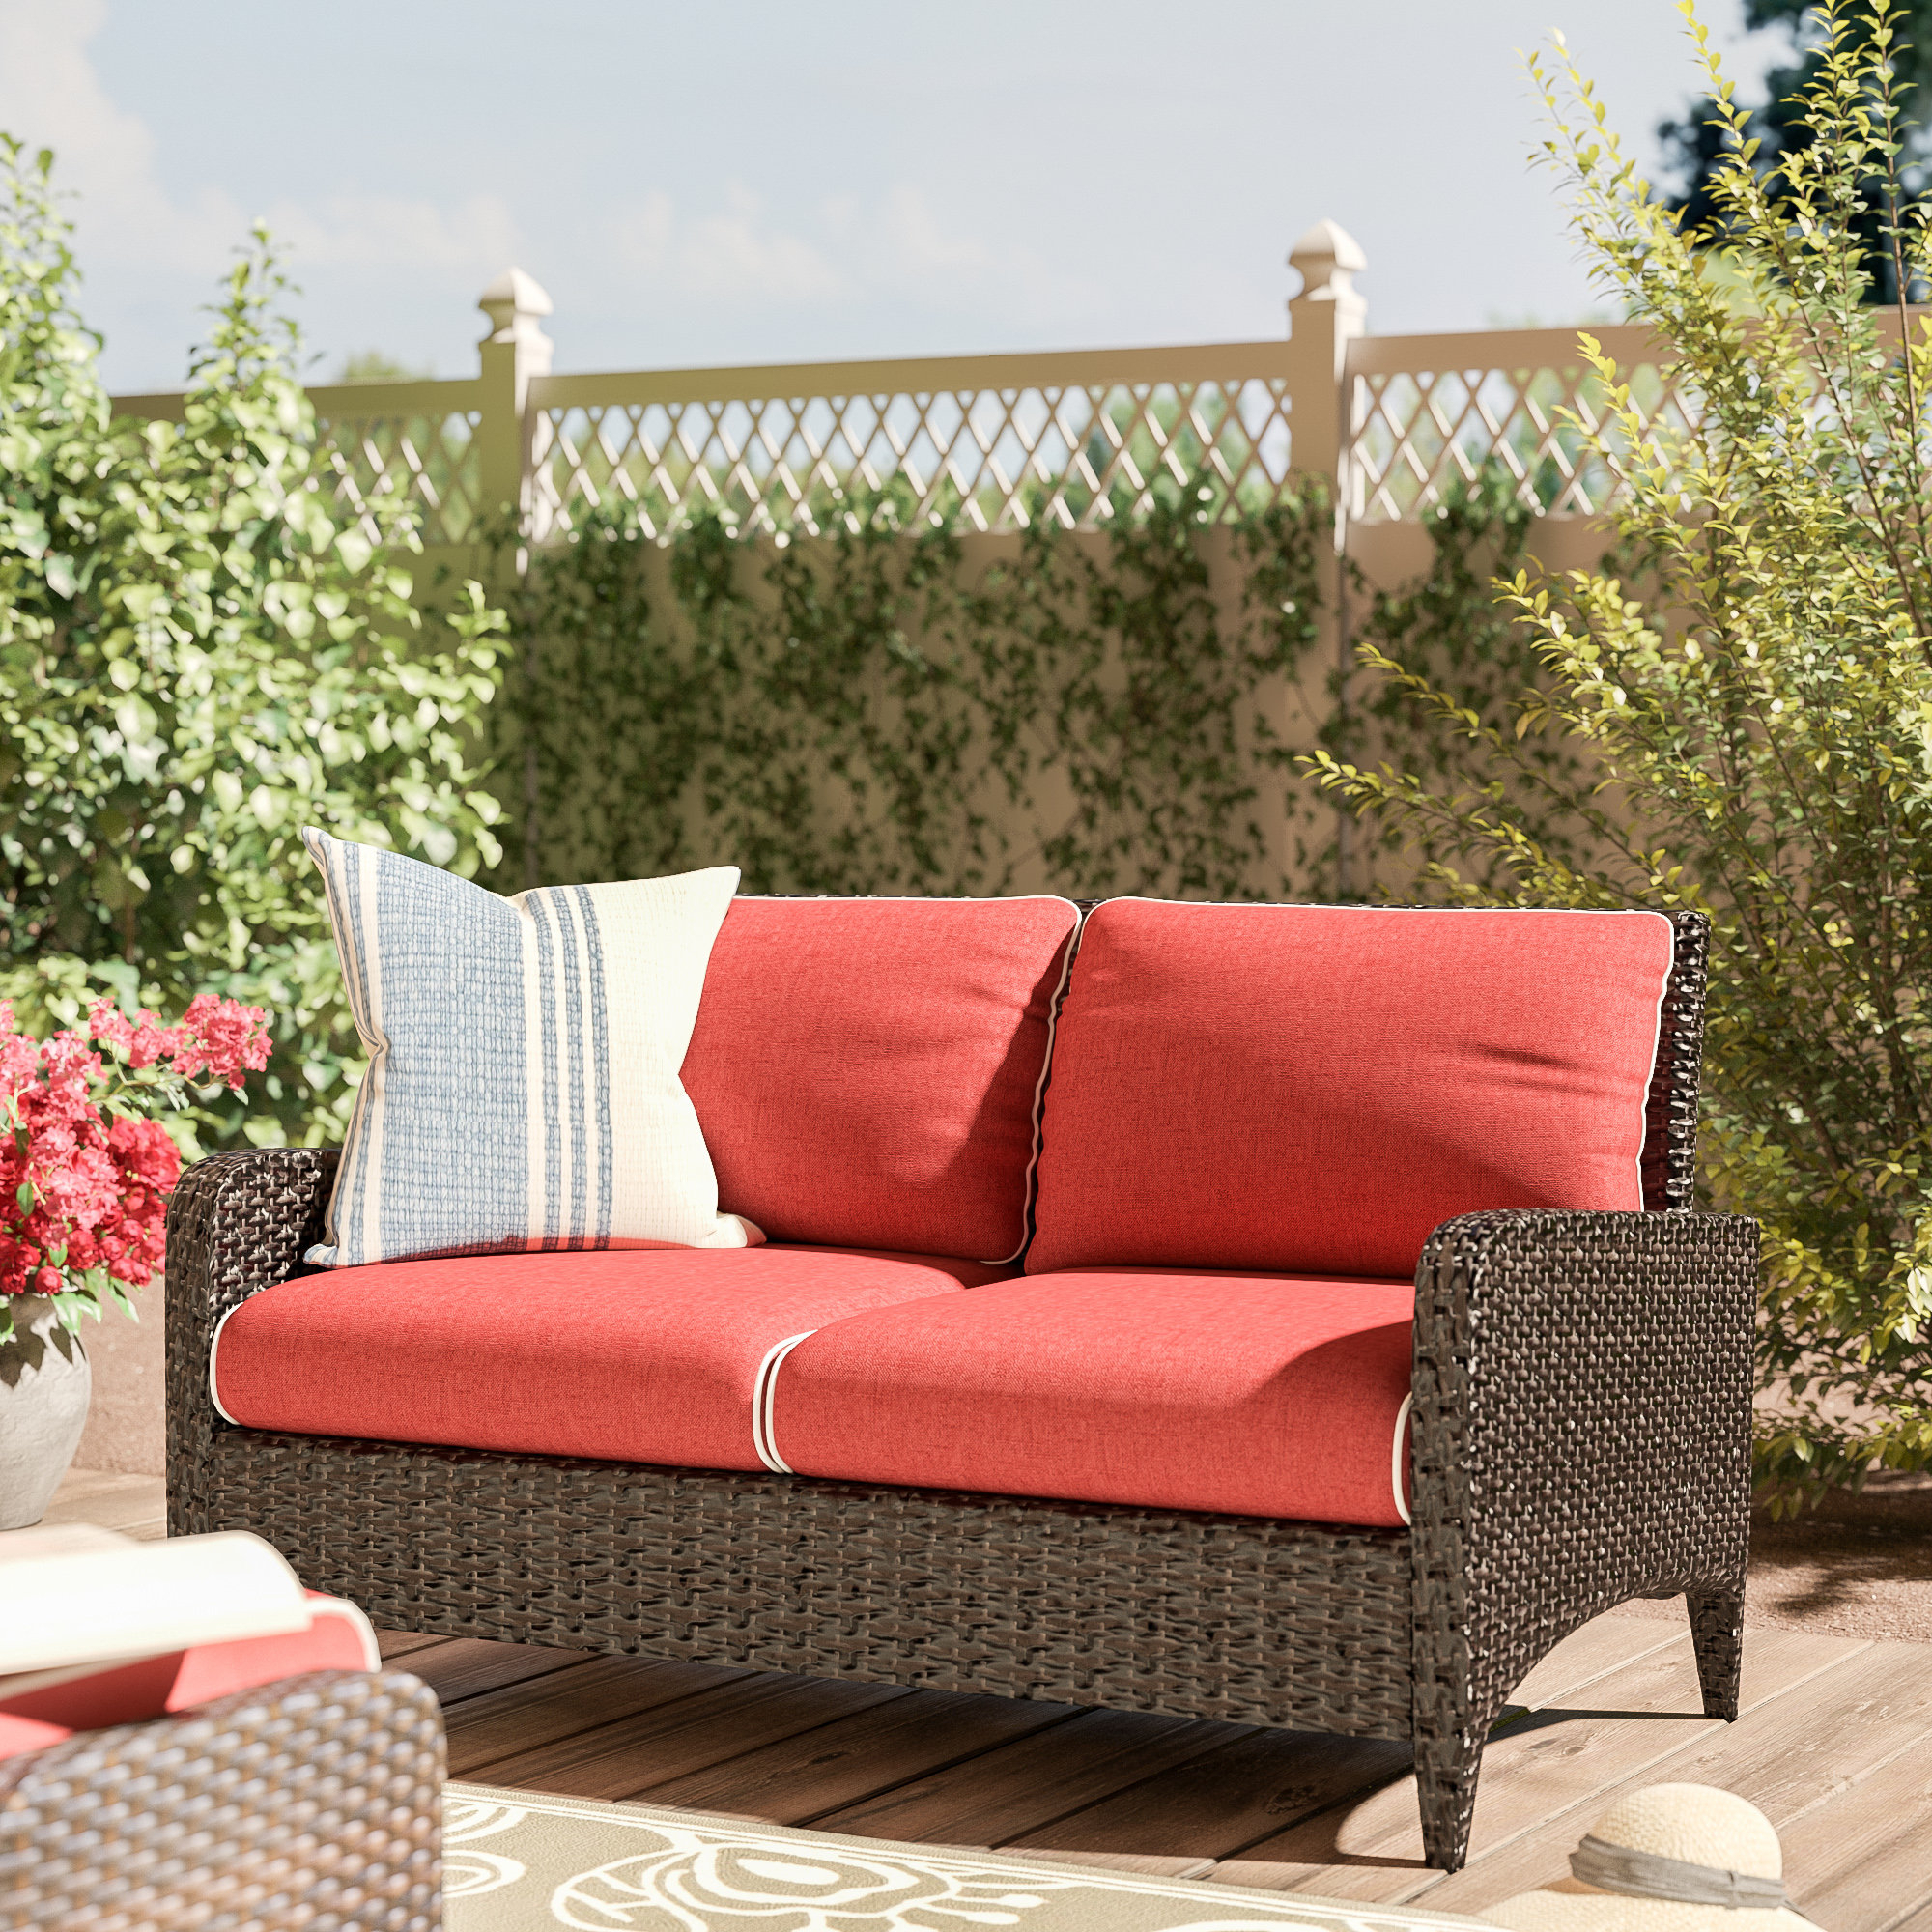 Best And Newest Bamboo Loveseat You'll Love In  (View 12 of 25)